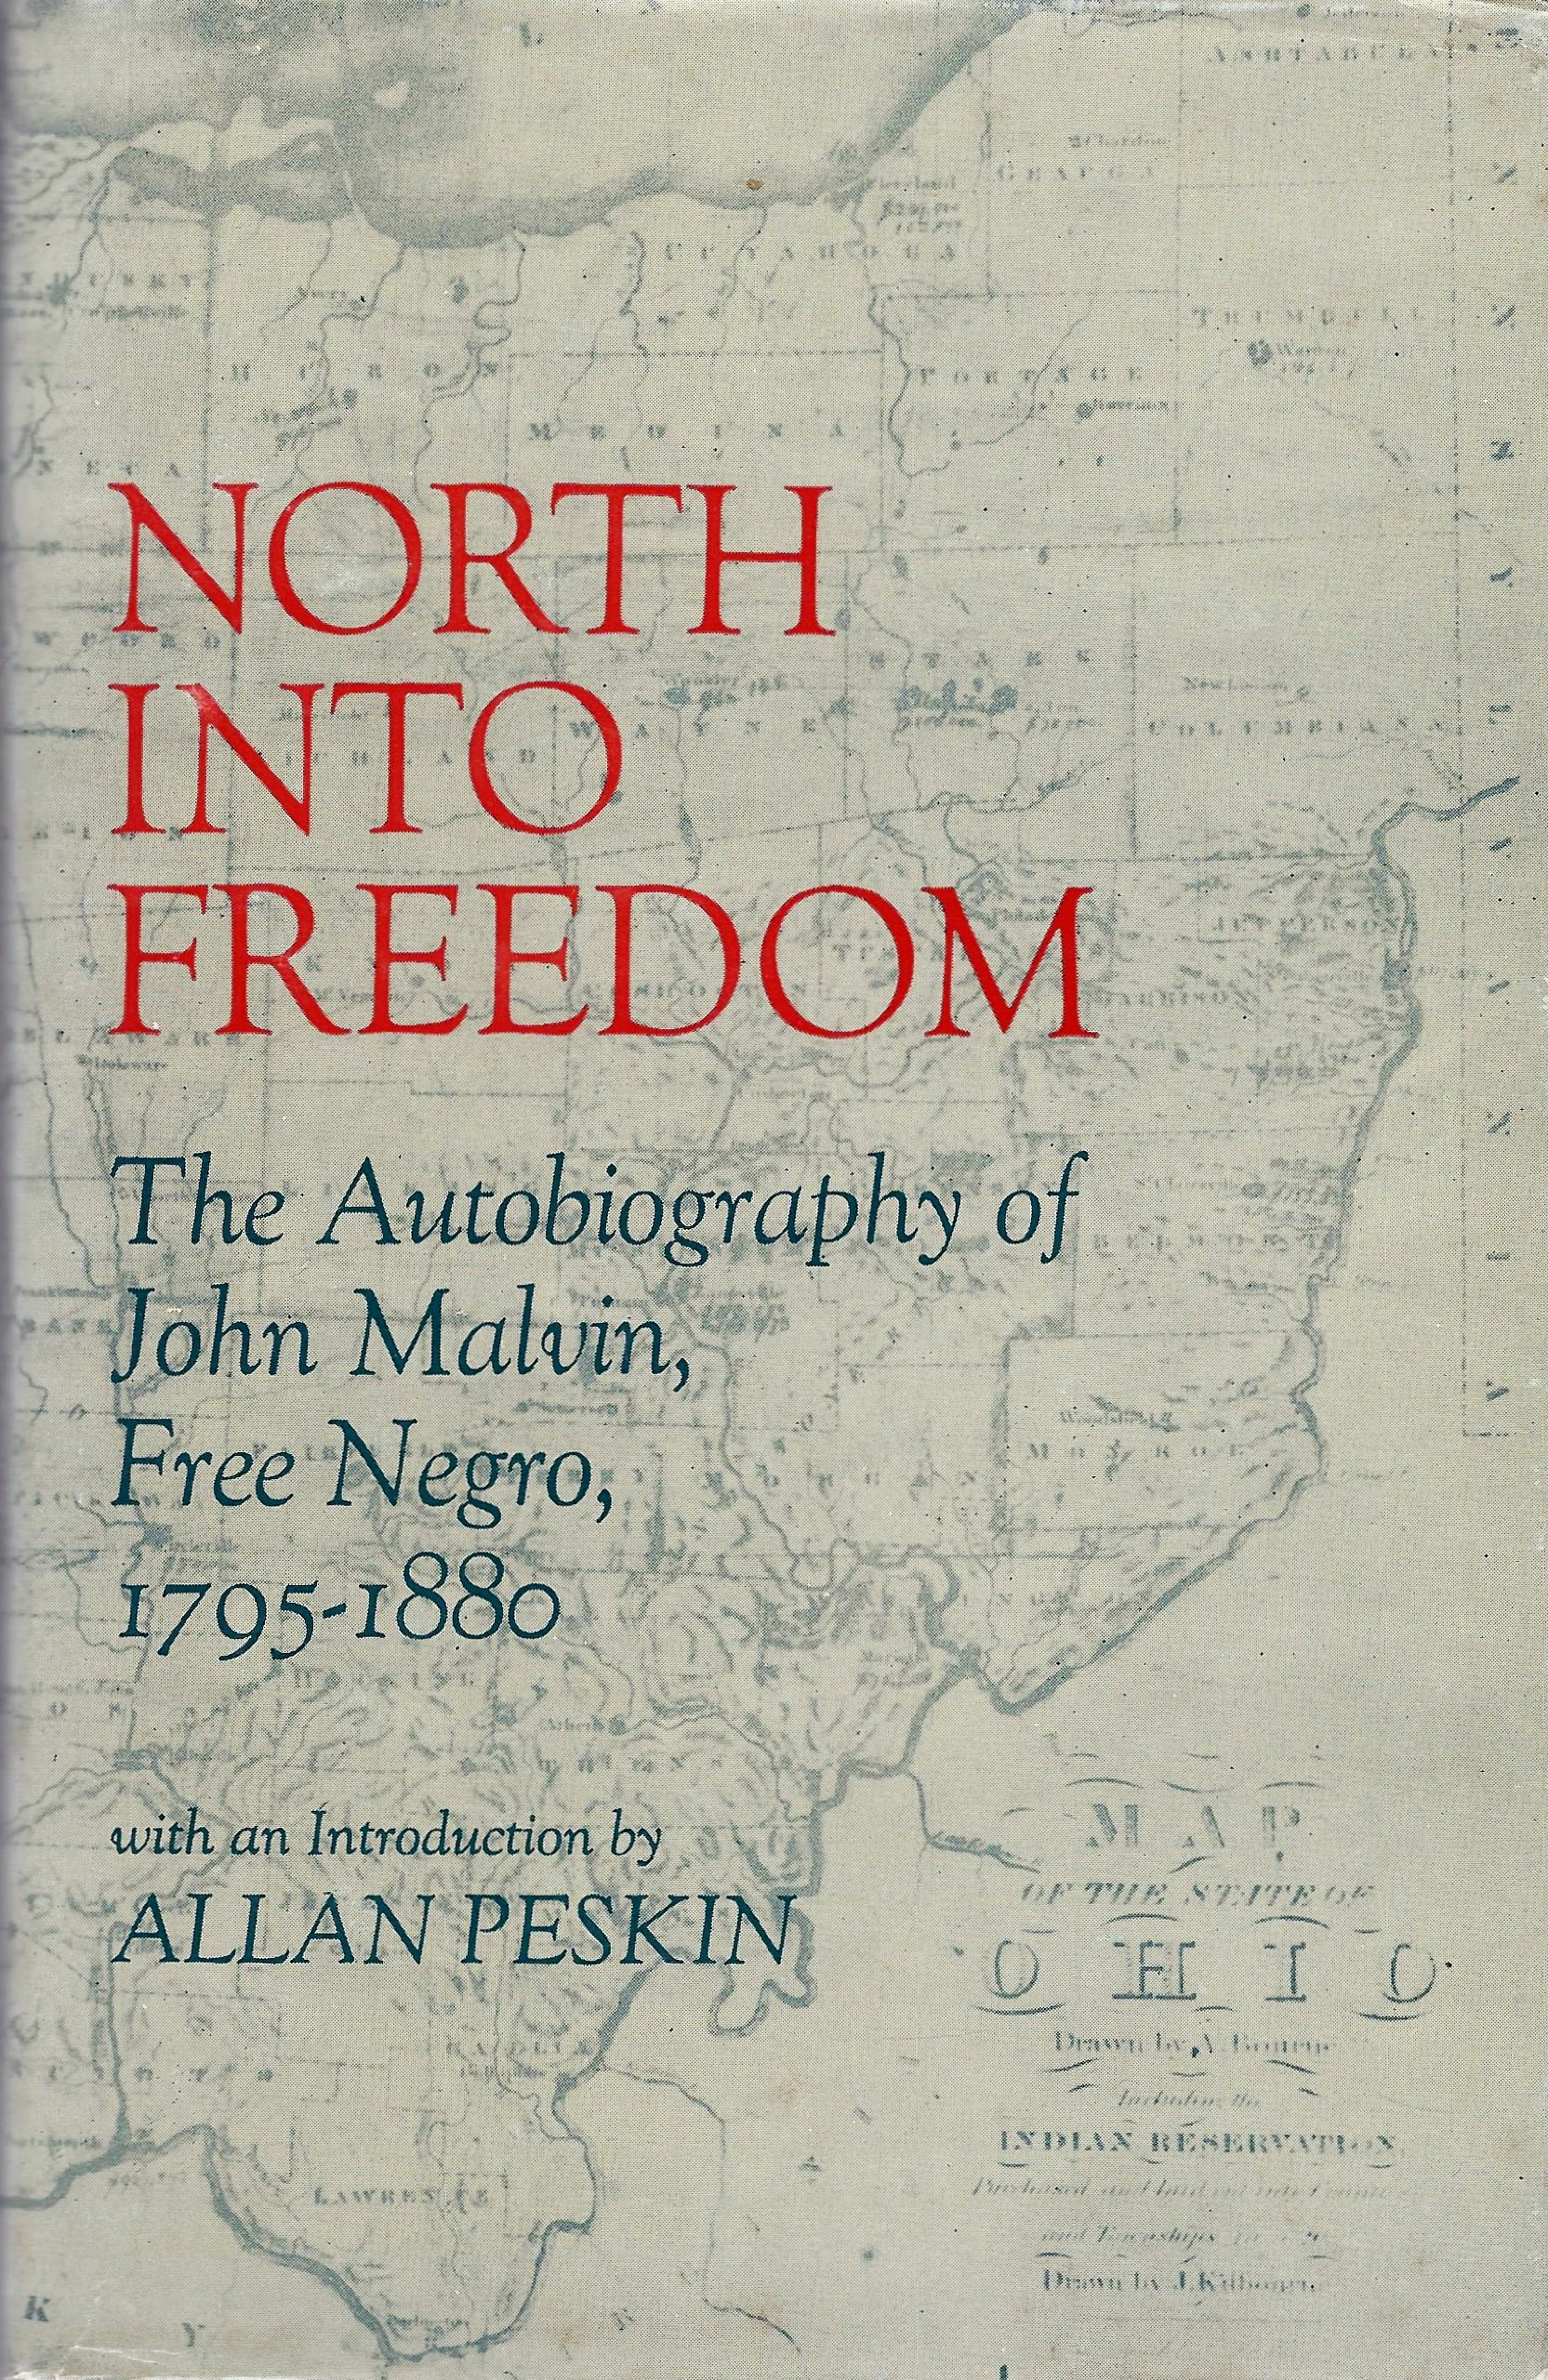 North Into Freedom: The Autobiography of John Malvin, Free Negro, 1795-1880